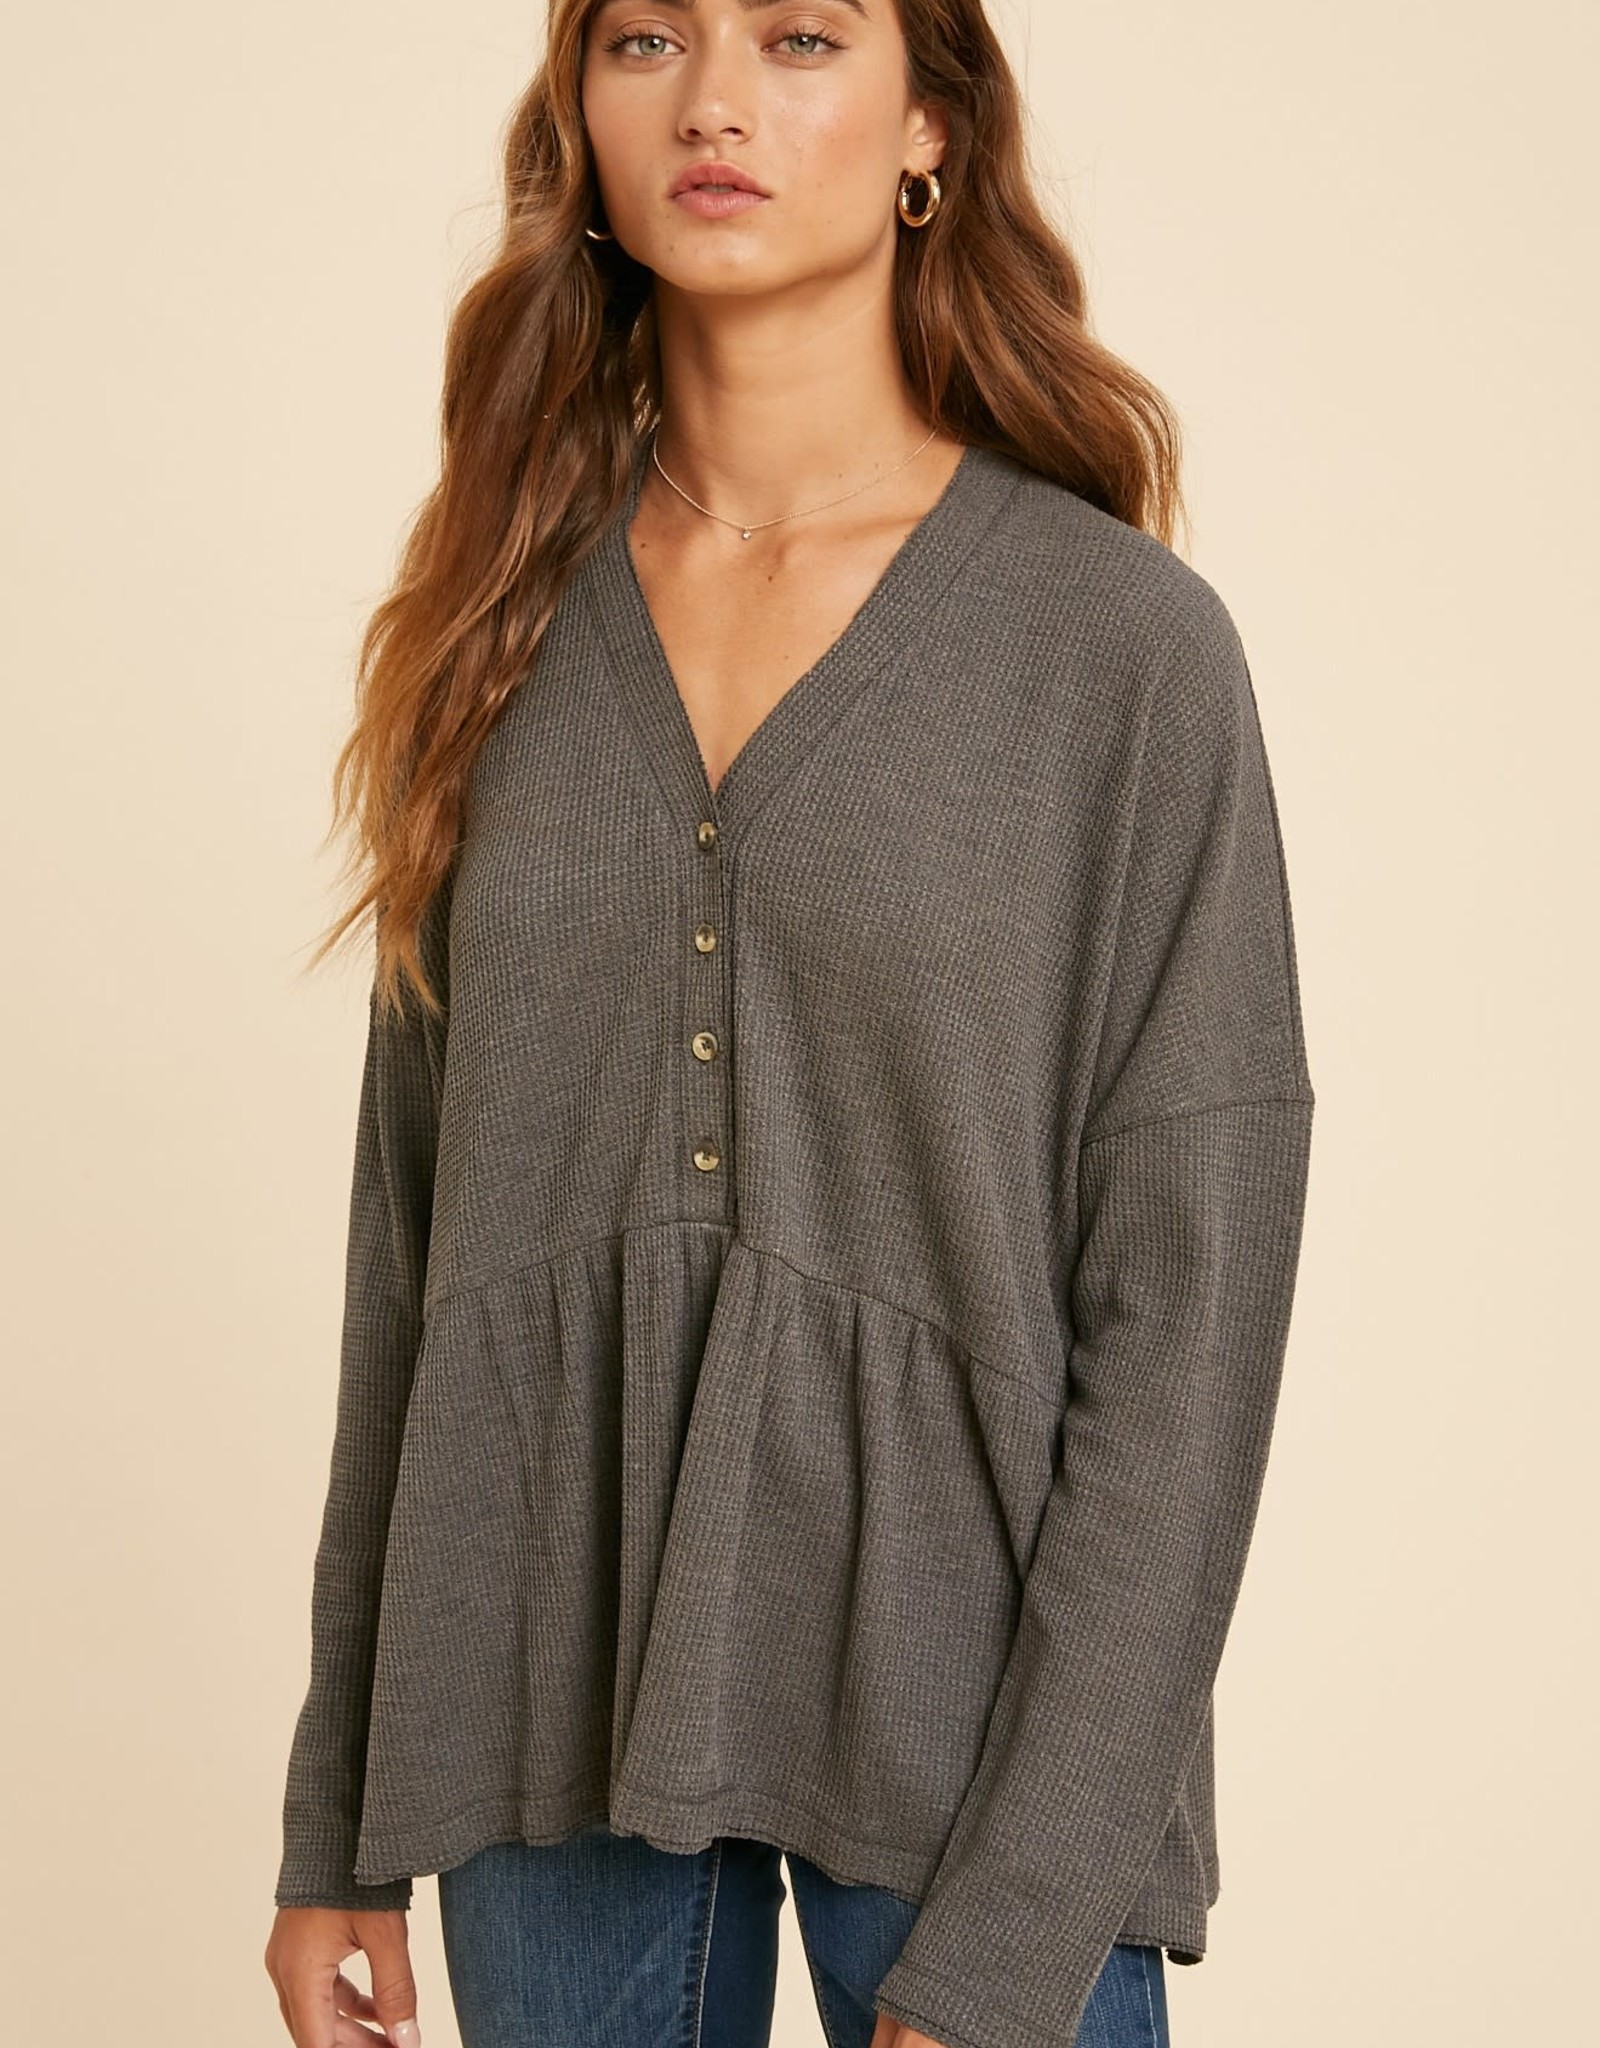 Miss Bliss Babydoll Thermal LS Button Up Top- Charcoal